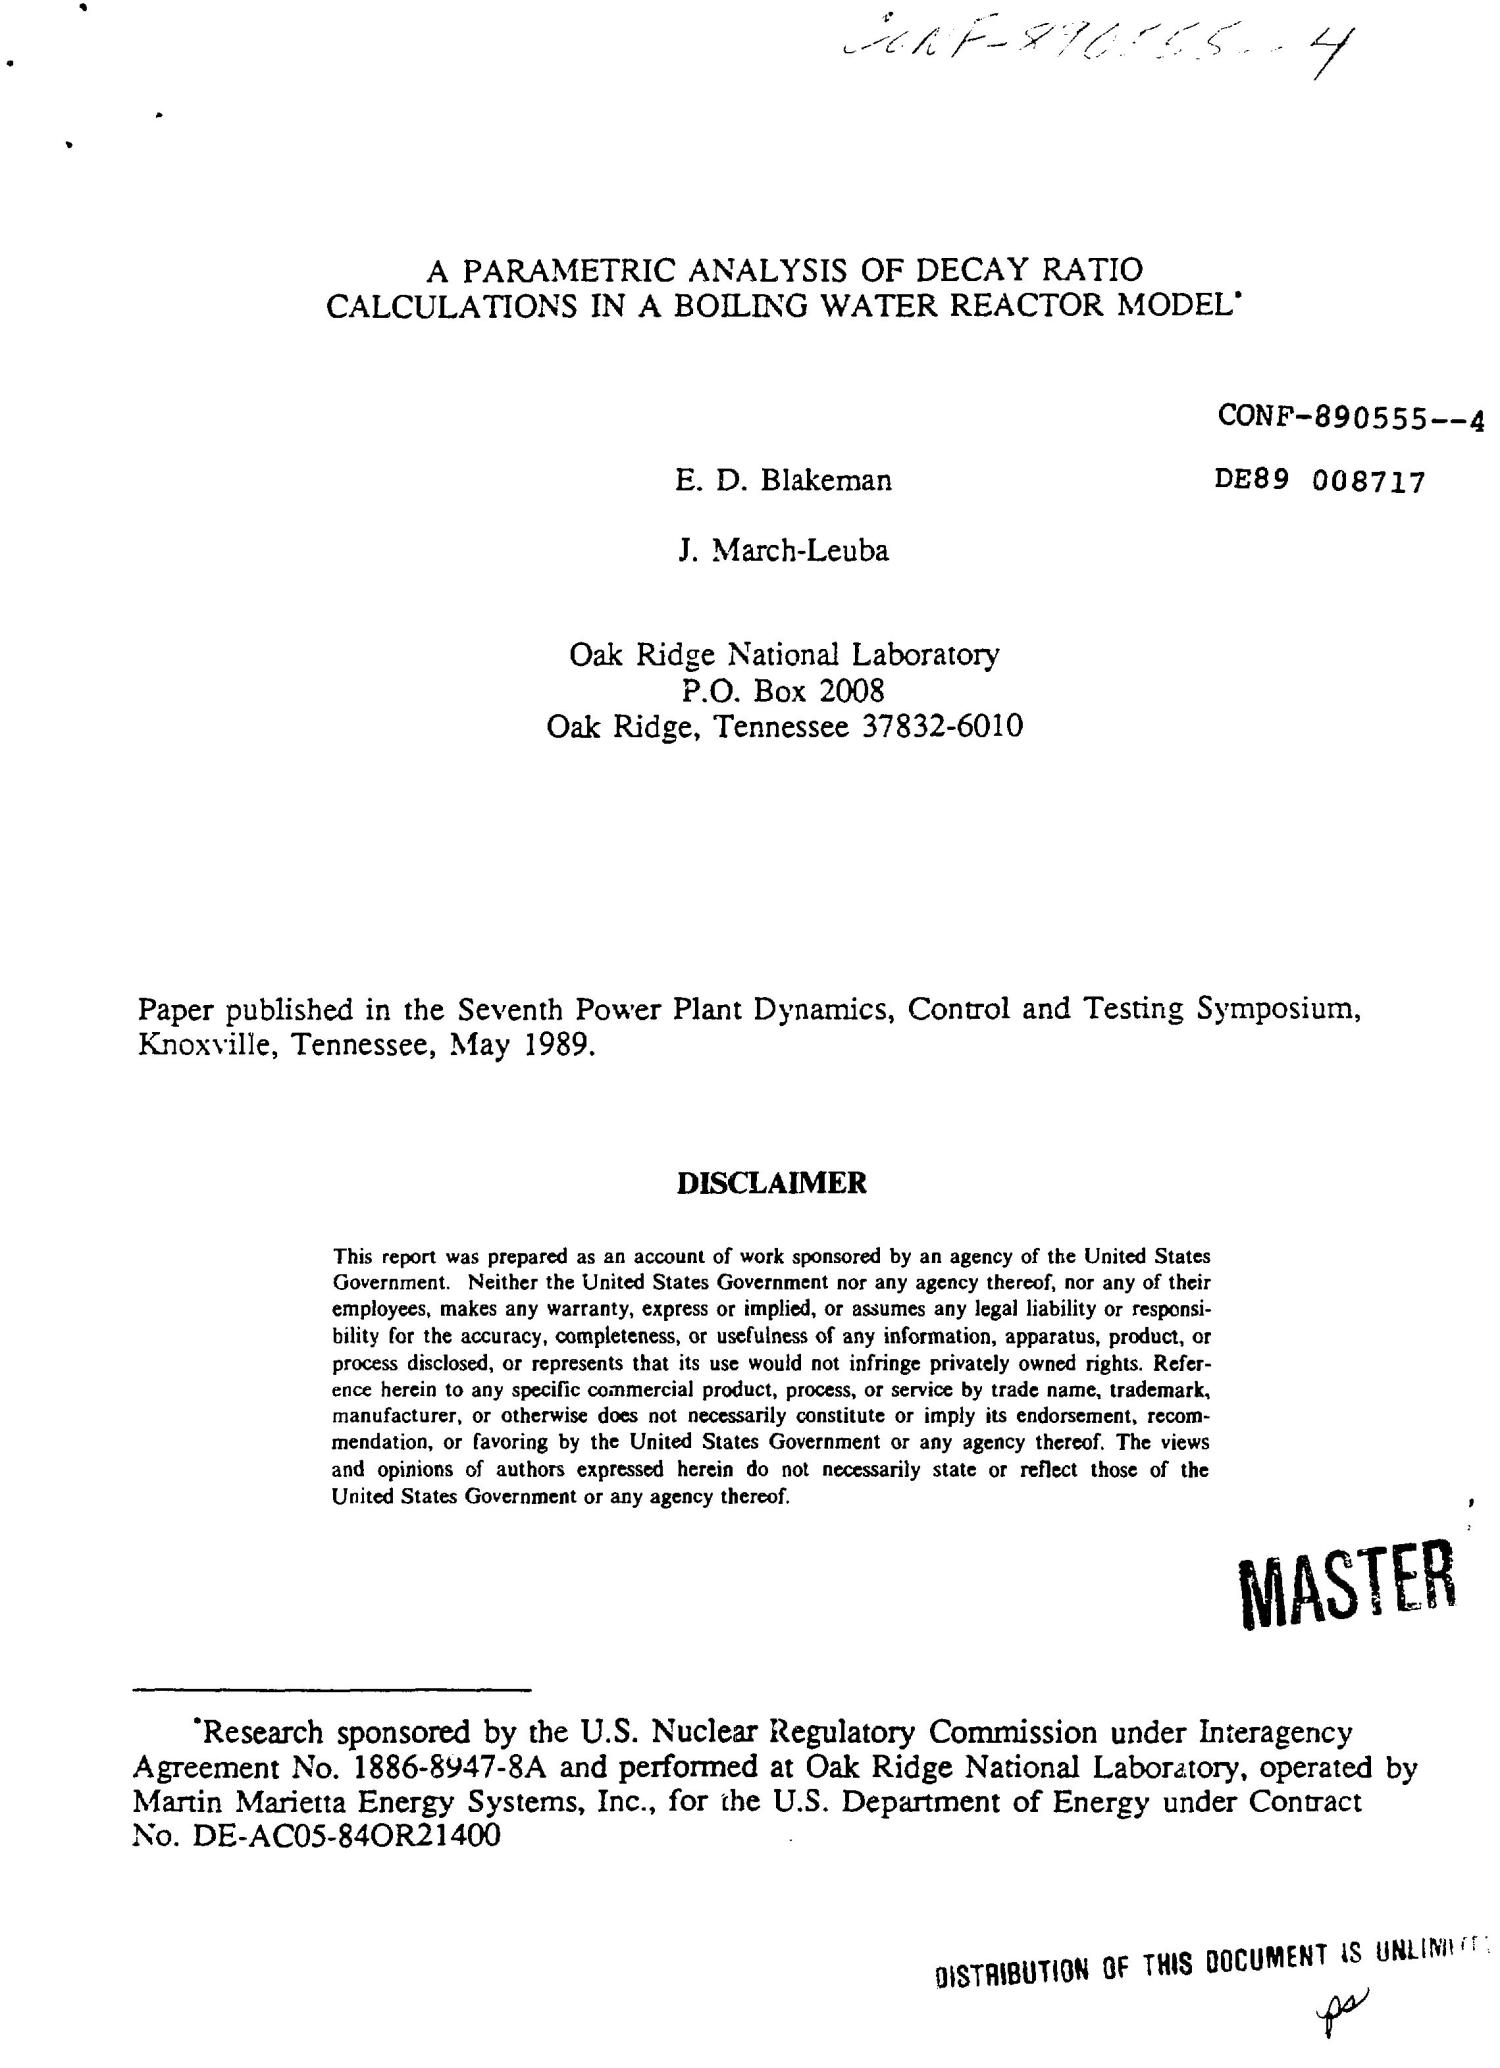 A Parametric Analysis Of Decay Ratio Calculations In Boiling Water Power Plant Diagram Reactor Model Digital Library